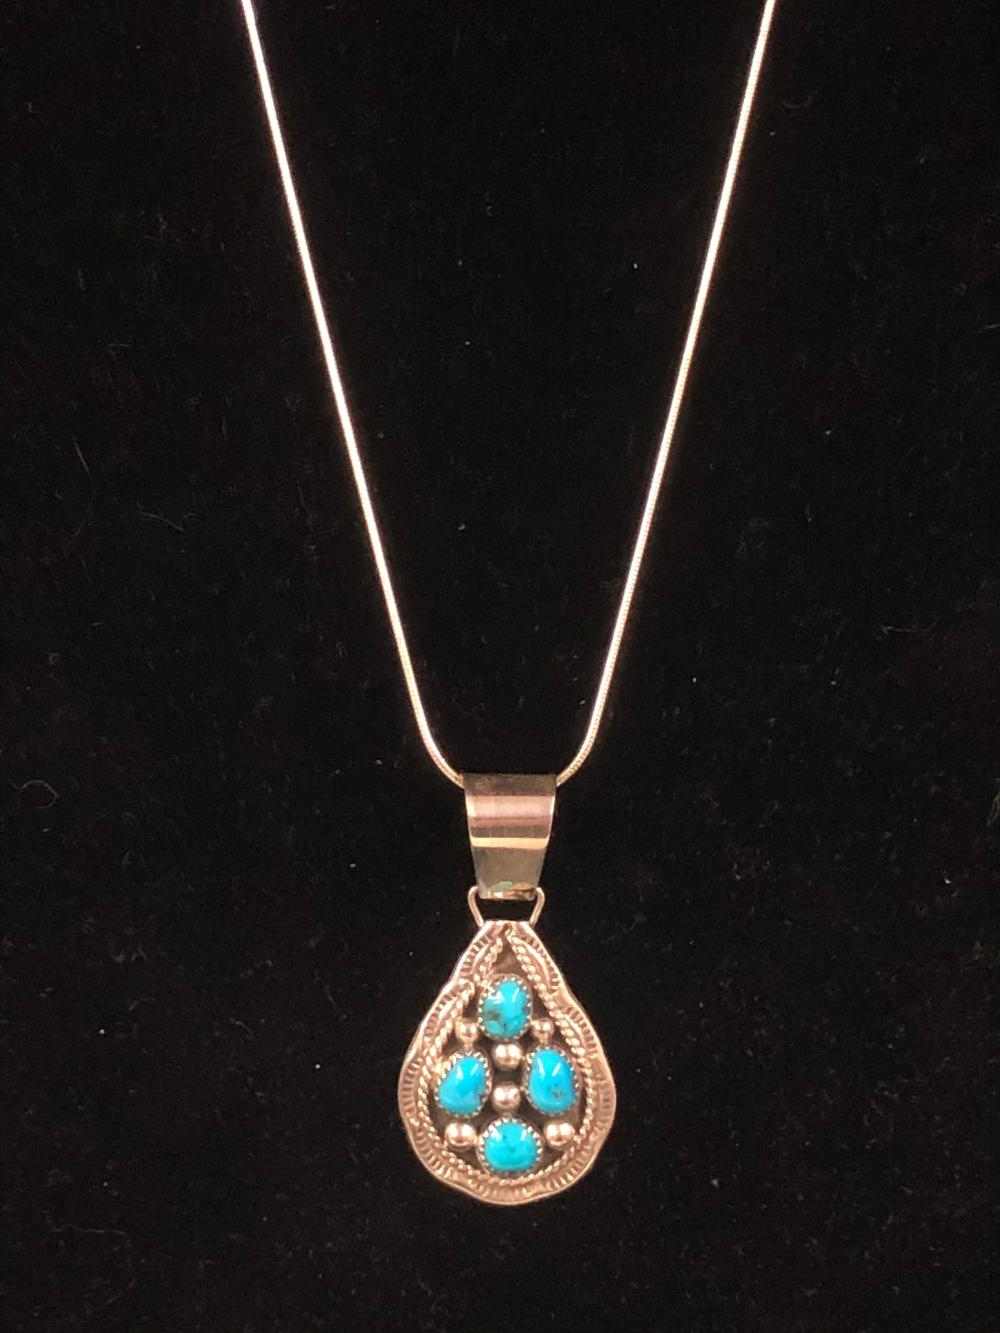 Four stone turquoise teardrop sterling silver pendant